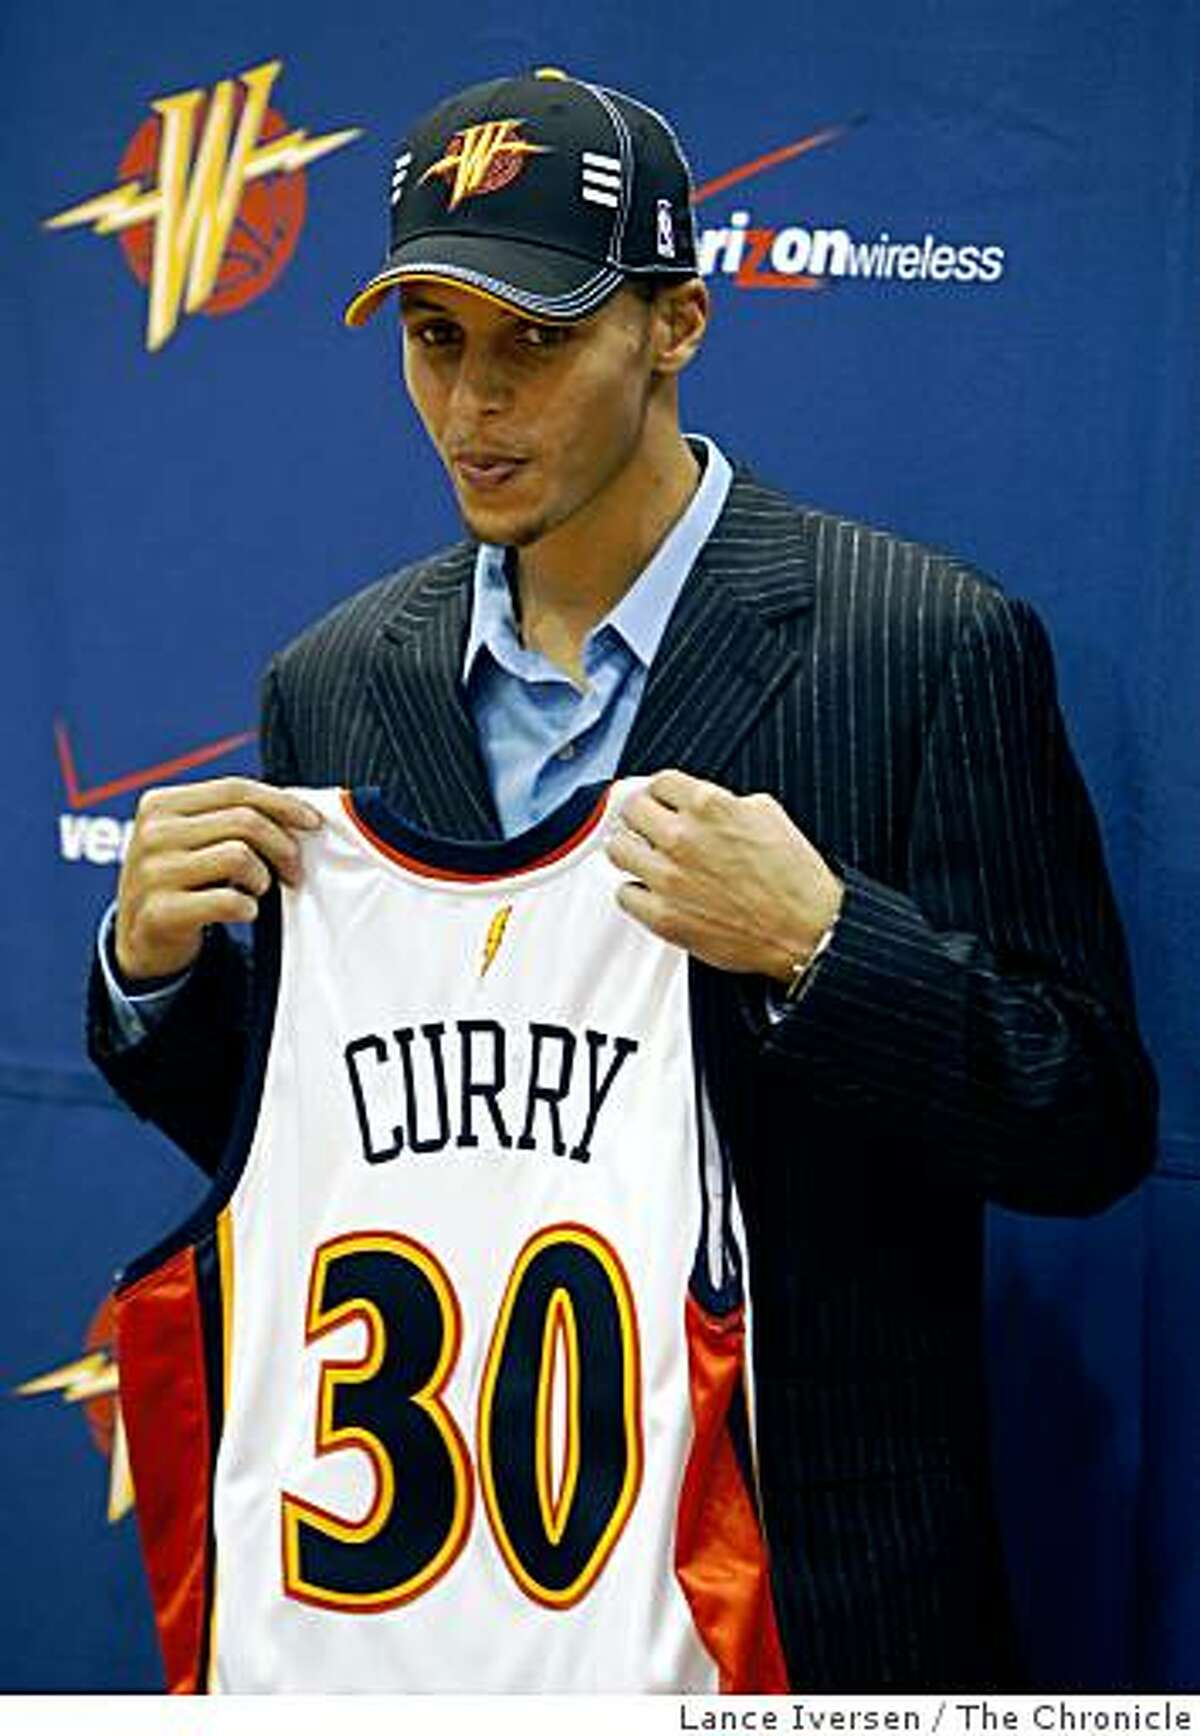 The Golden State Warriors introduced their first round draft pick, who was picked 7th in the NBA draft, Stephen Curry to the fans and media Friday June 26, 2009.